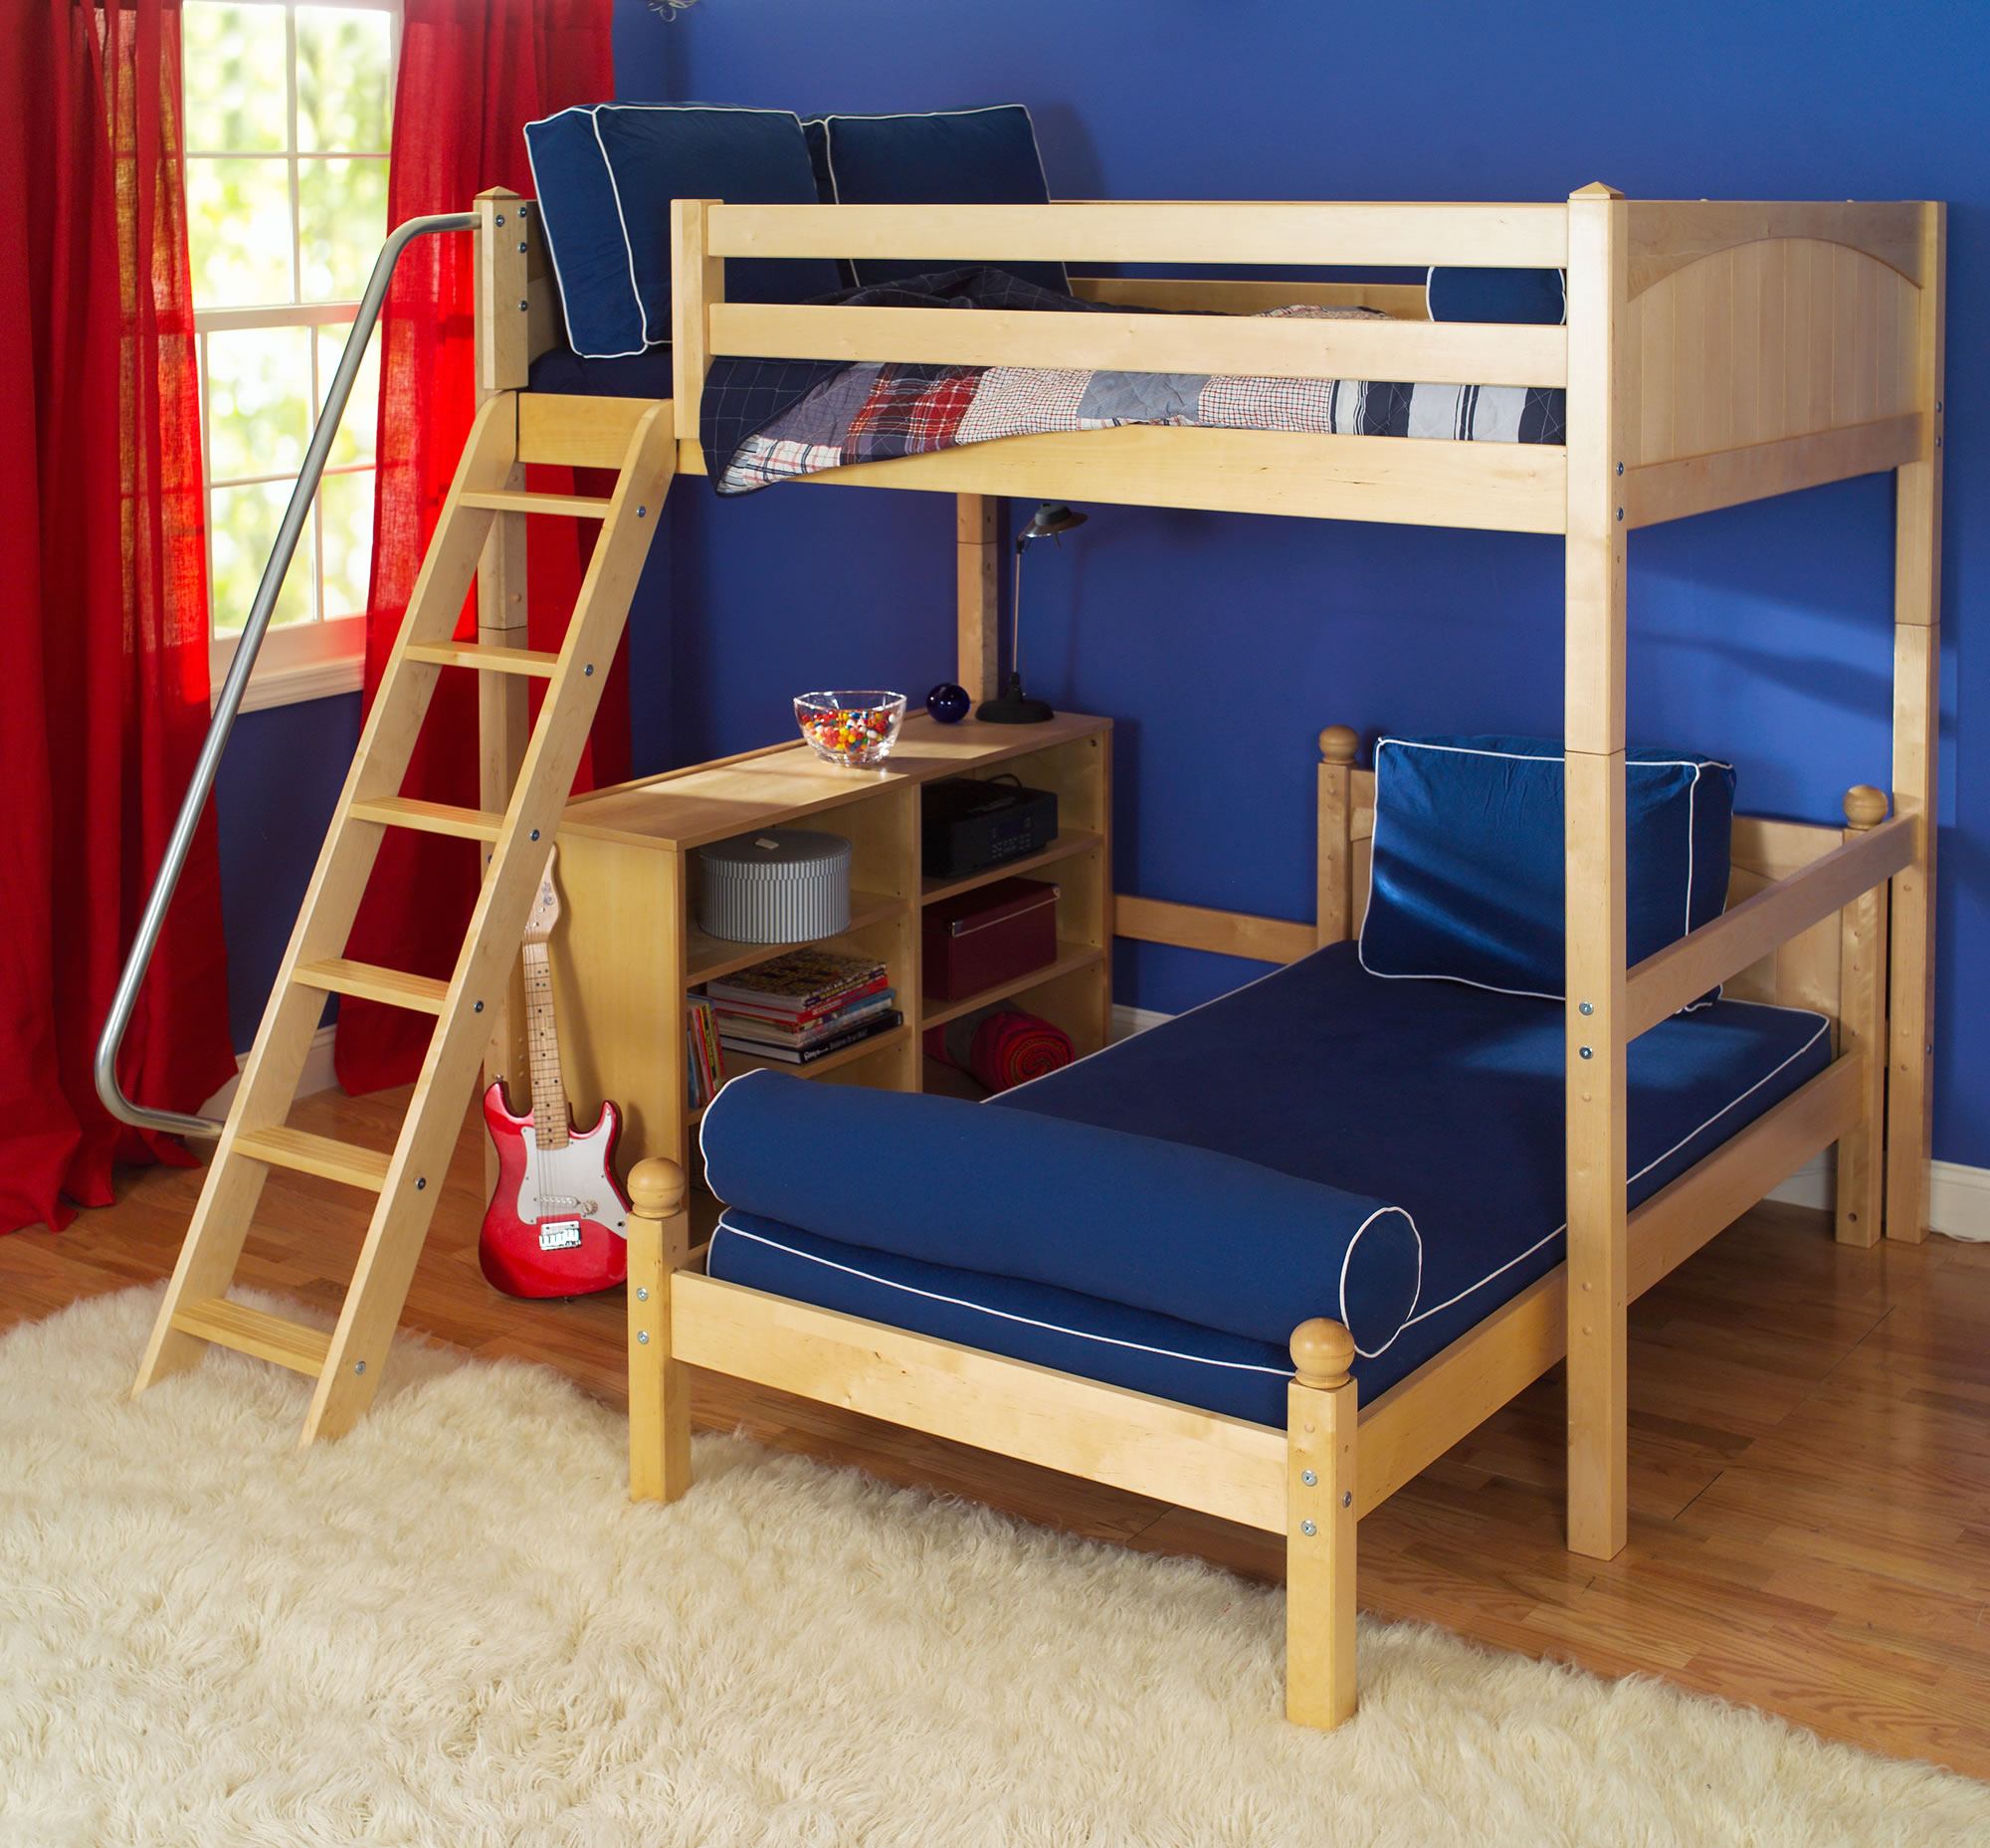 ... -Twin-over-Full-L-Shaped-Bunk-Bed-w.-Angle-Ladder-Bunk-Bed_0_0.jpg